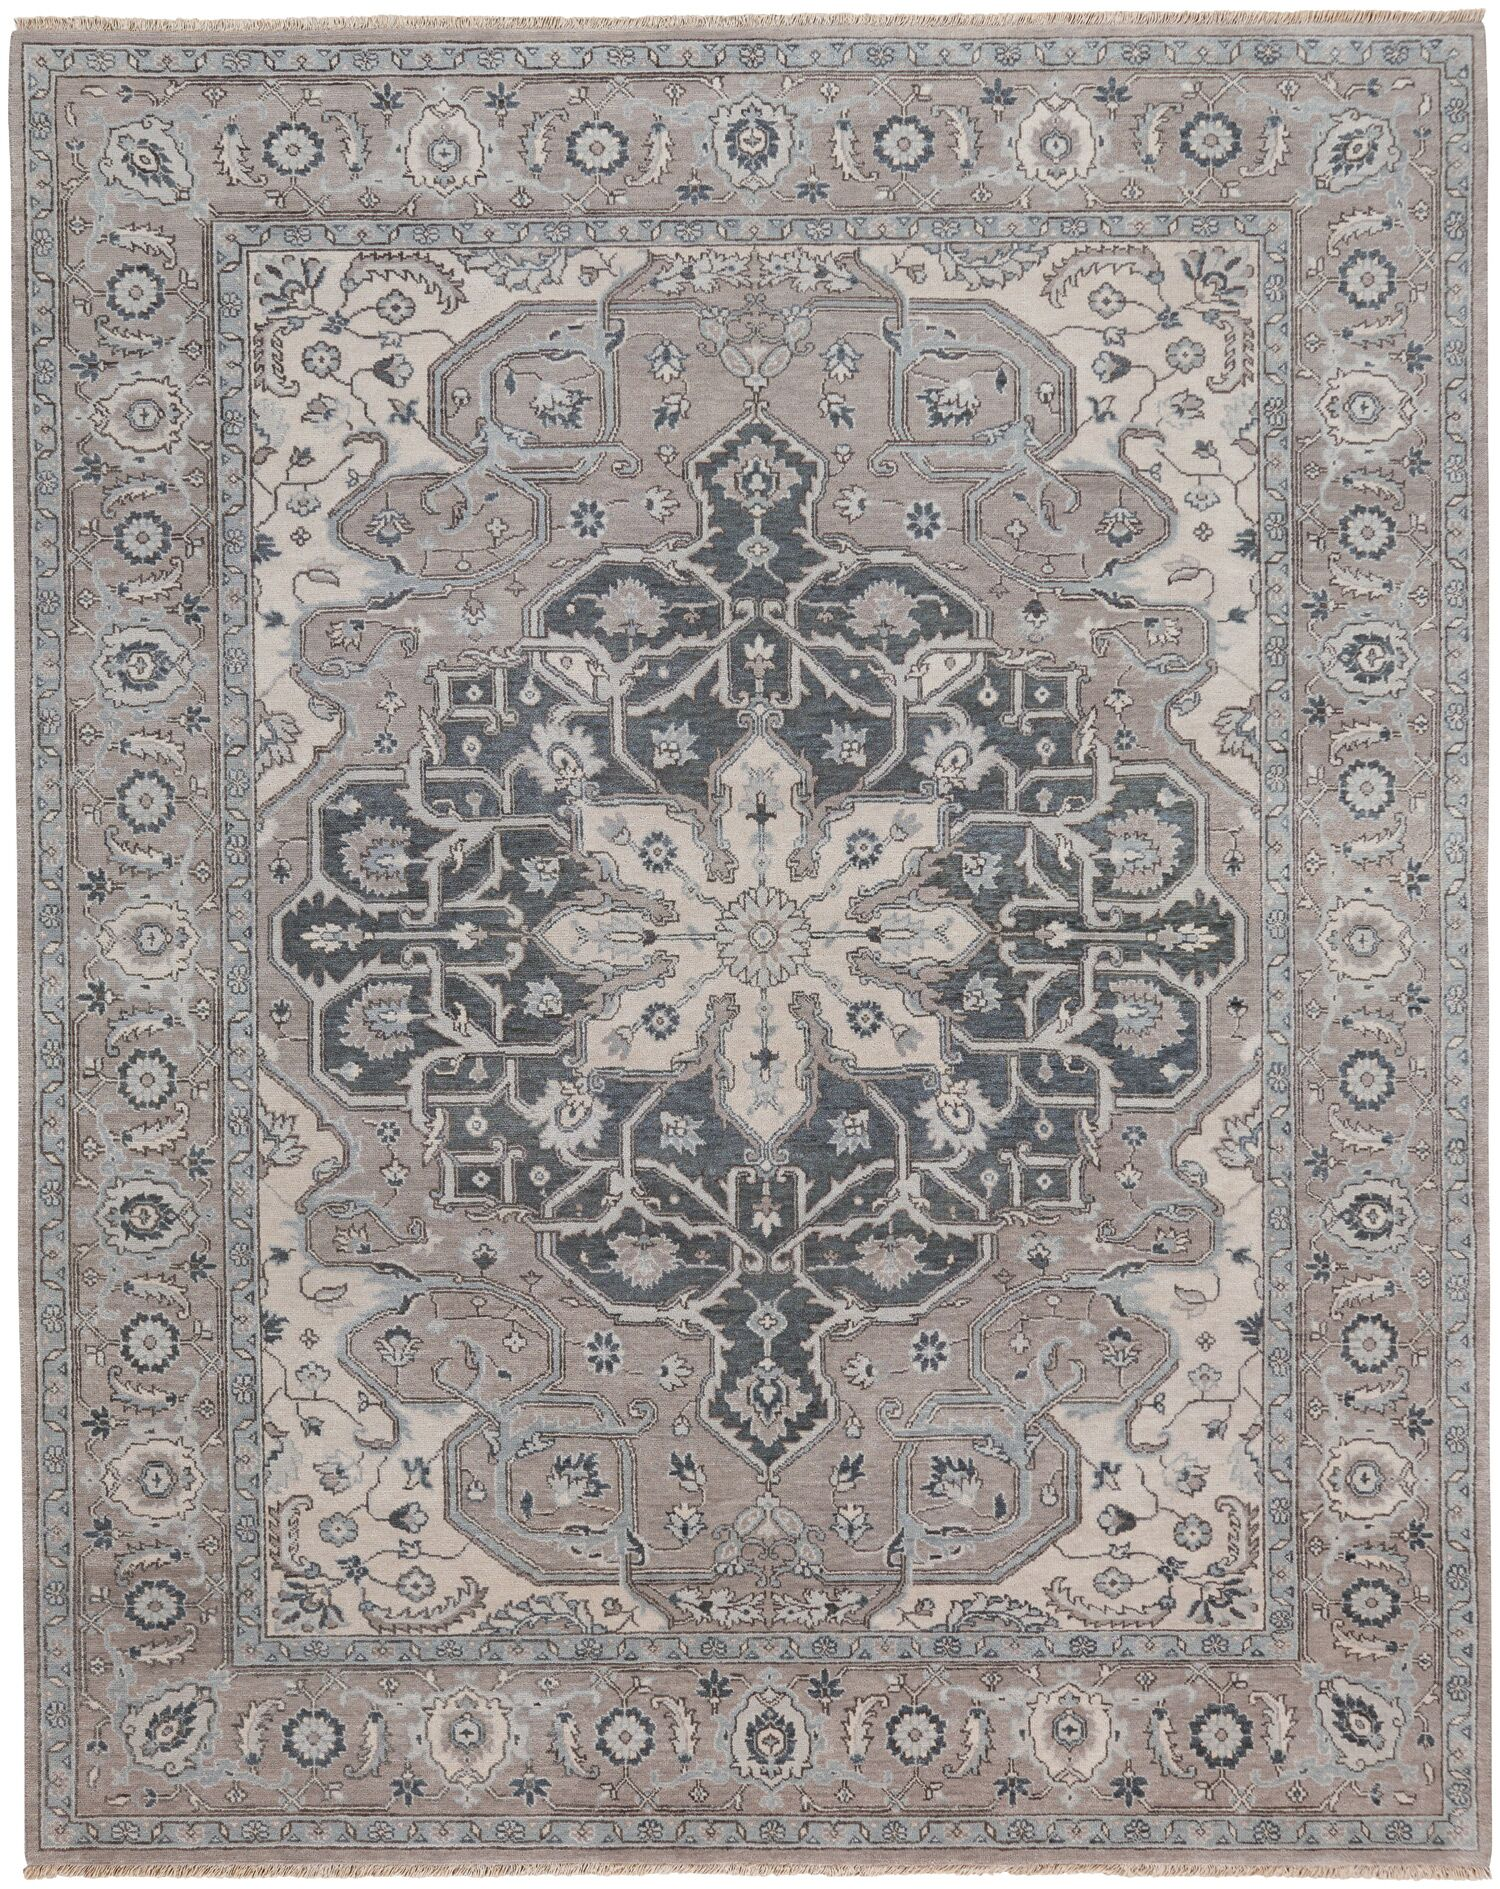 Biltmore Hand-Knotted Beige/Gray Area Rug Rug Size: Rectangle 8'6